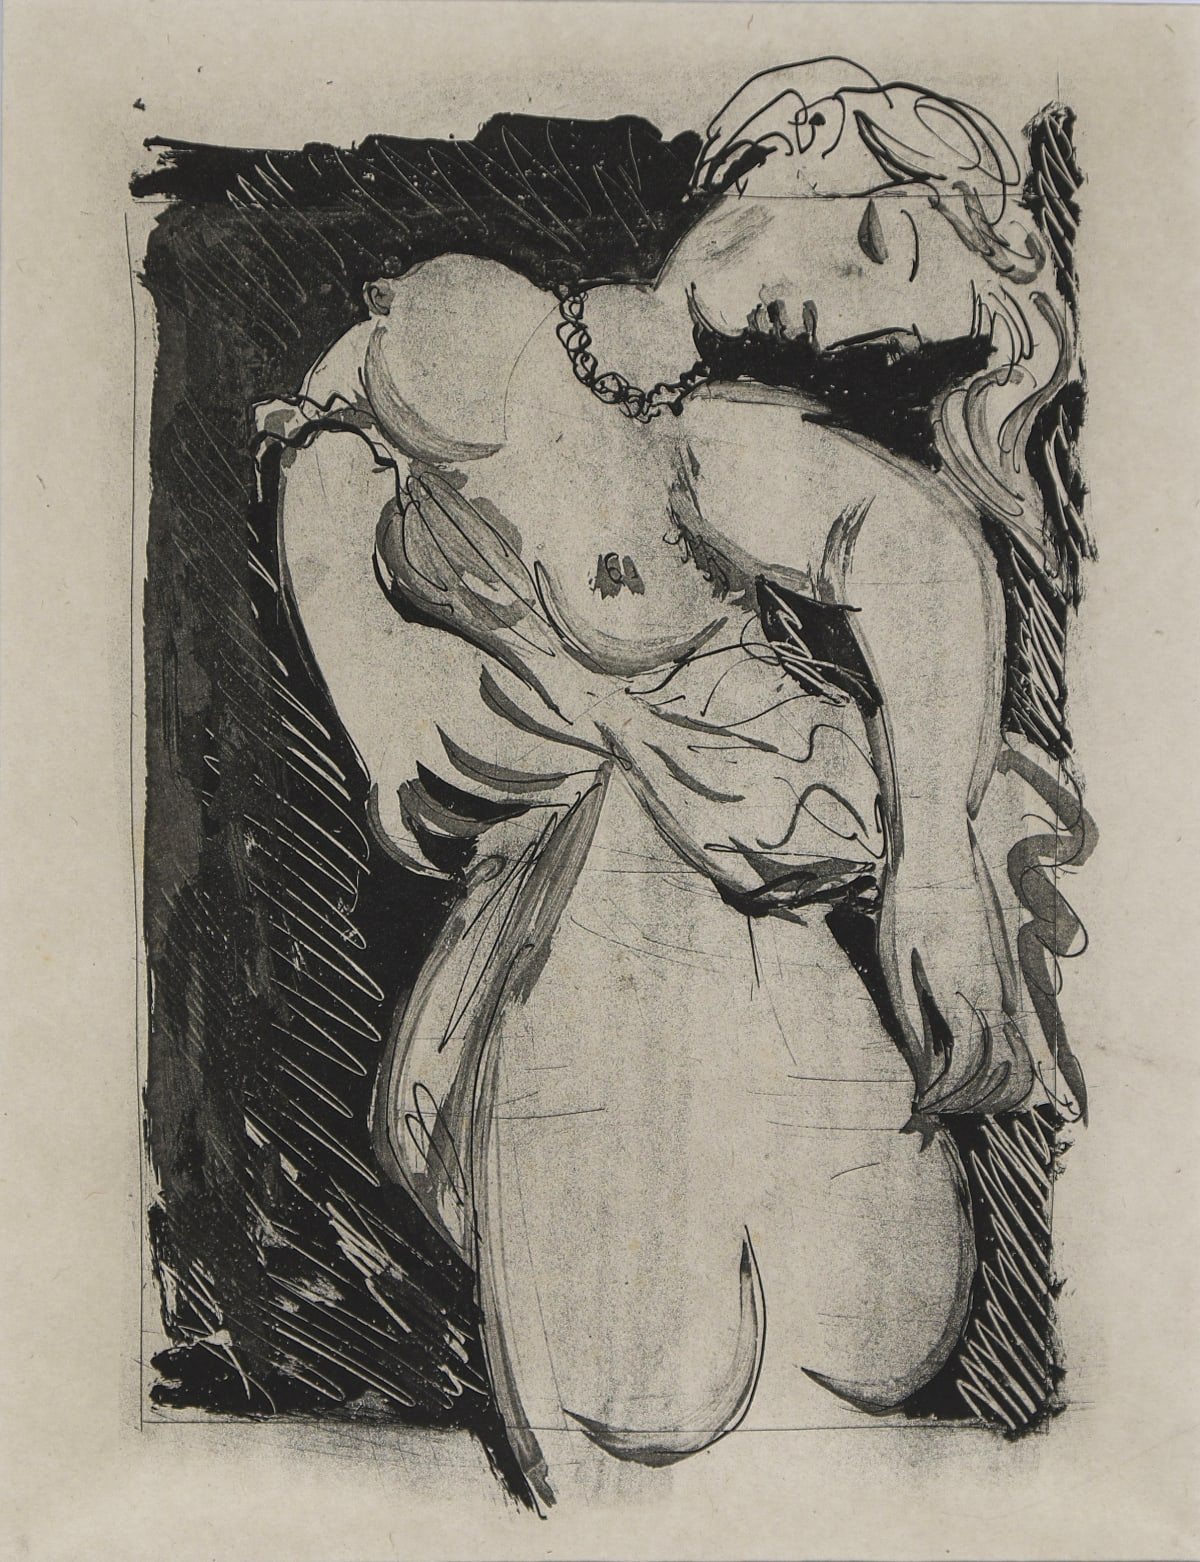 Pablo Picasso La Puce, 1936 - 1942 Etching and aquatint on Chinese paper 37 x 27 cm 2nd state B, Artist proof on Chinese paper, aside from the numbered edition of 35 original etchings to illustrate Buffon's texts, Paris, 1942. Martin Fabiani, editor. Proof printed by Lacourière